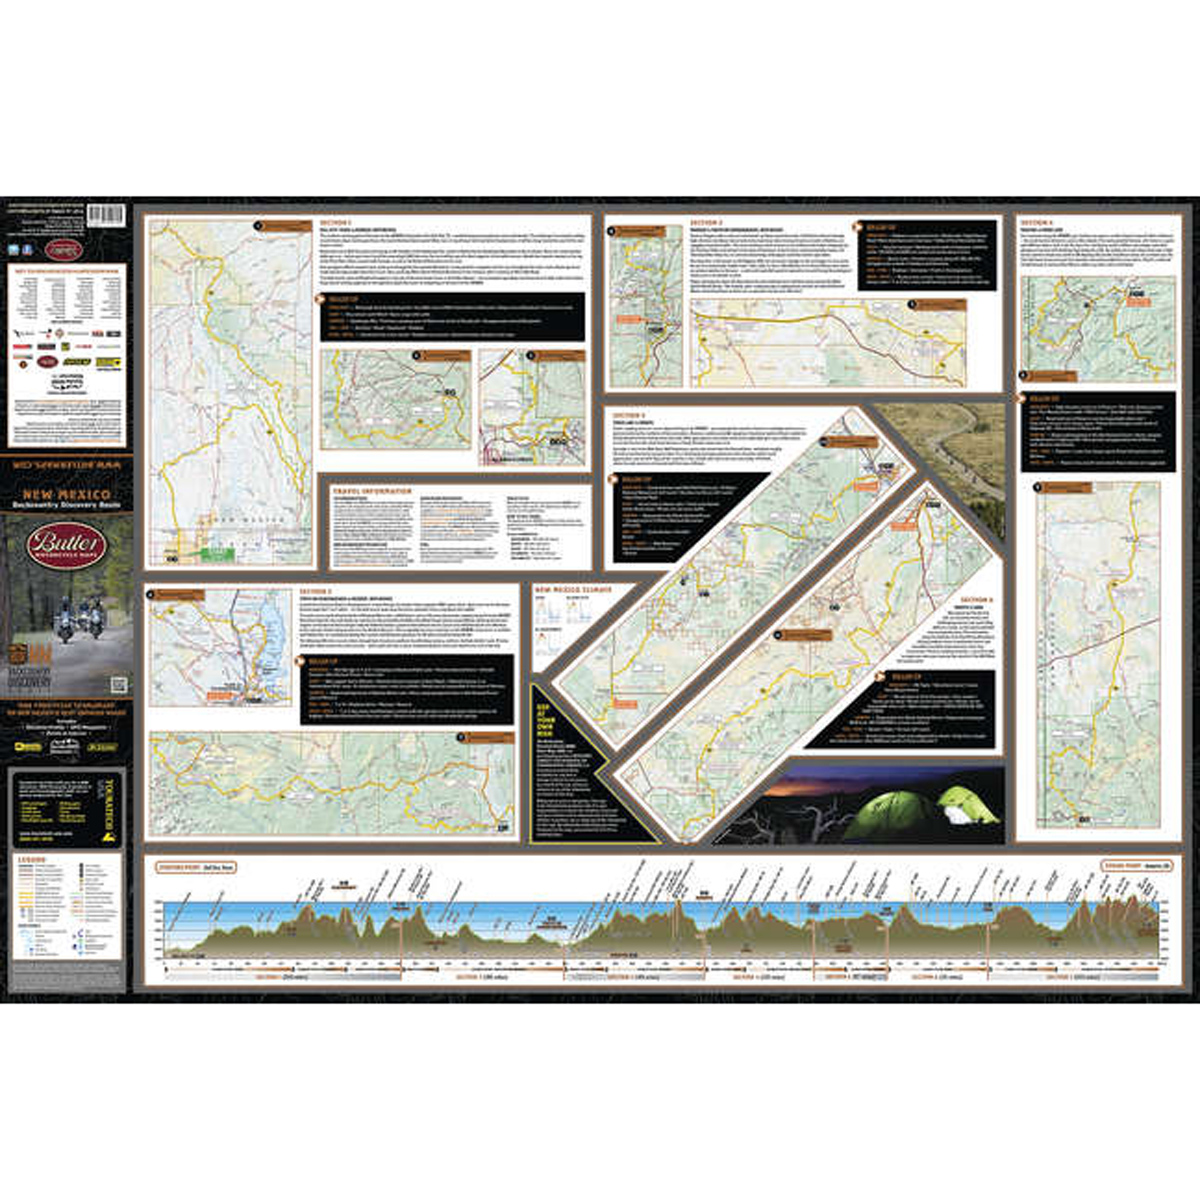 Butler Maps New Mexico Backcountry Discovery Routes Map